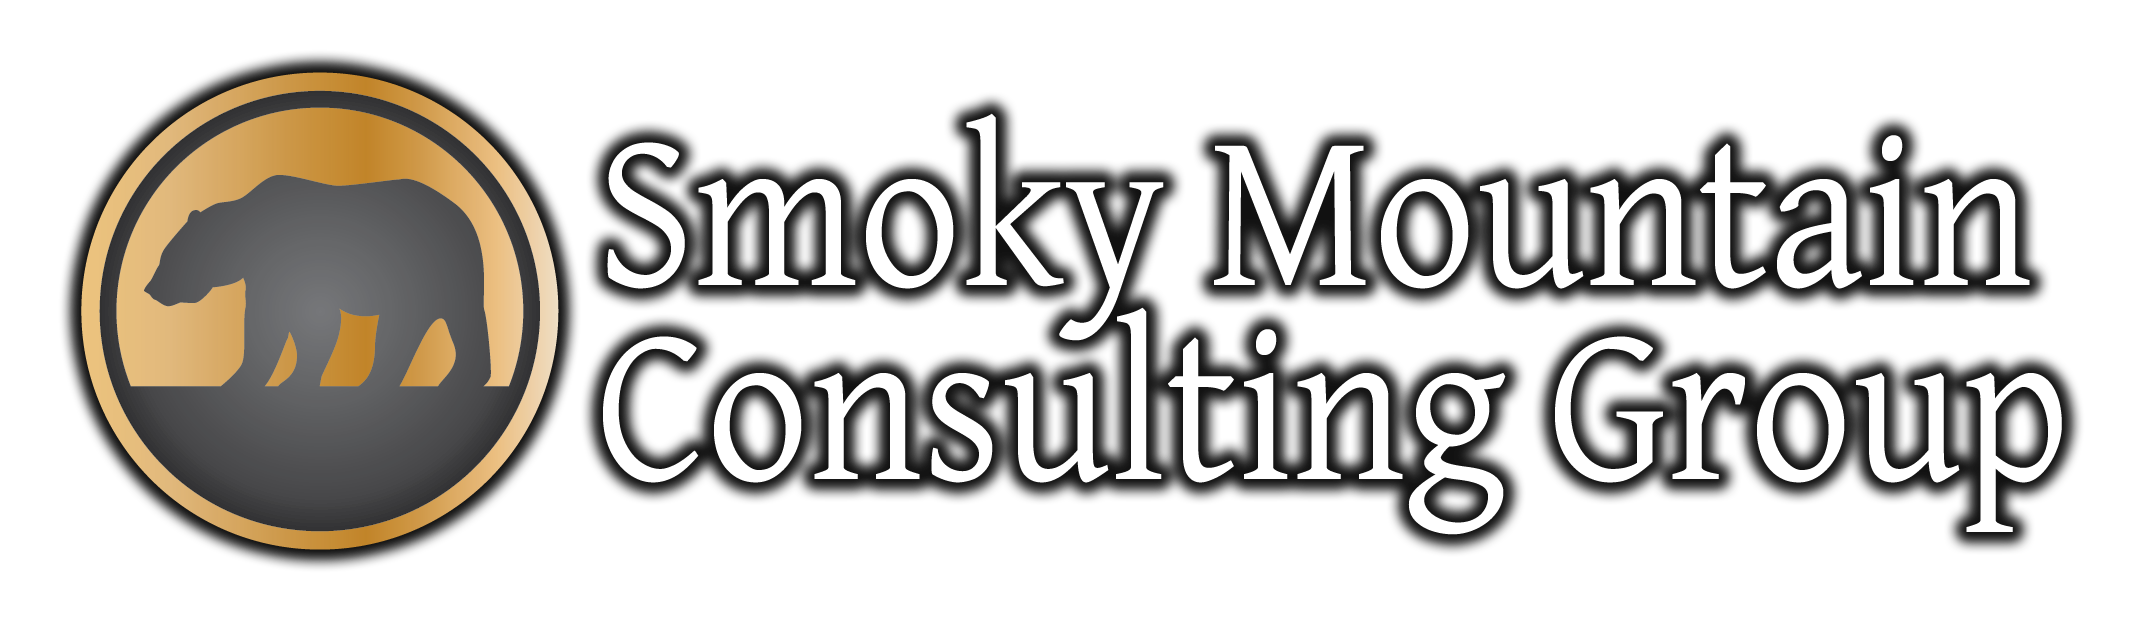 SMCG Logo - For Black or Dark Backgrounds - With Shadow